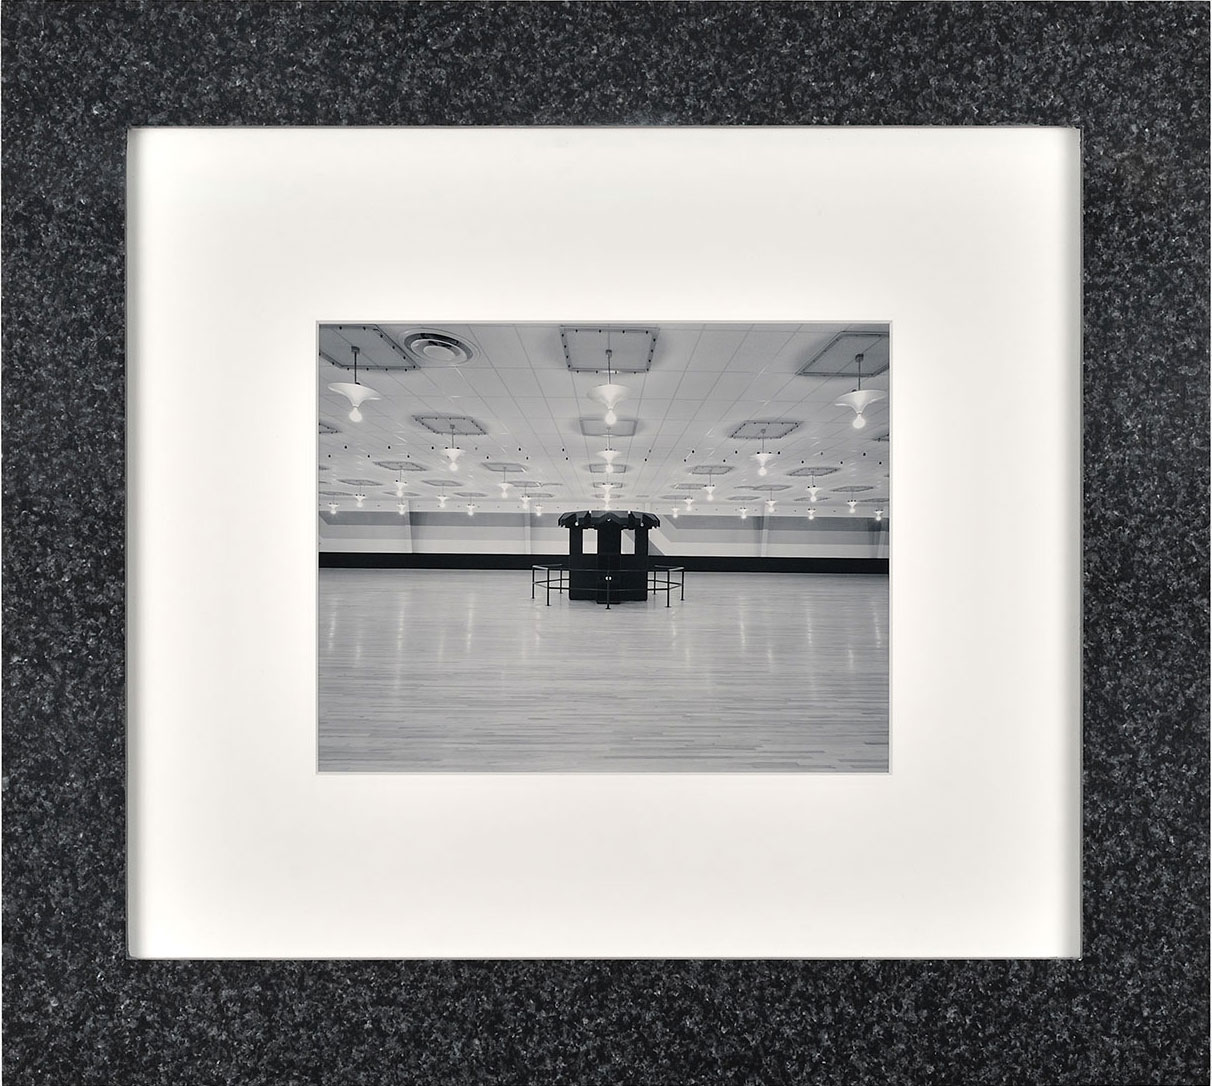 Lynne Cohen / Estate  - Skatadium Skating Rink (OTTAWA), 1978